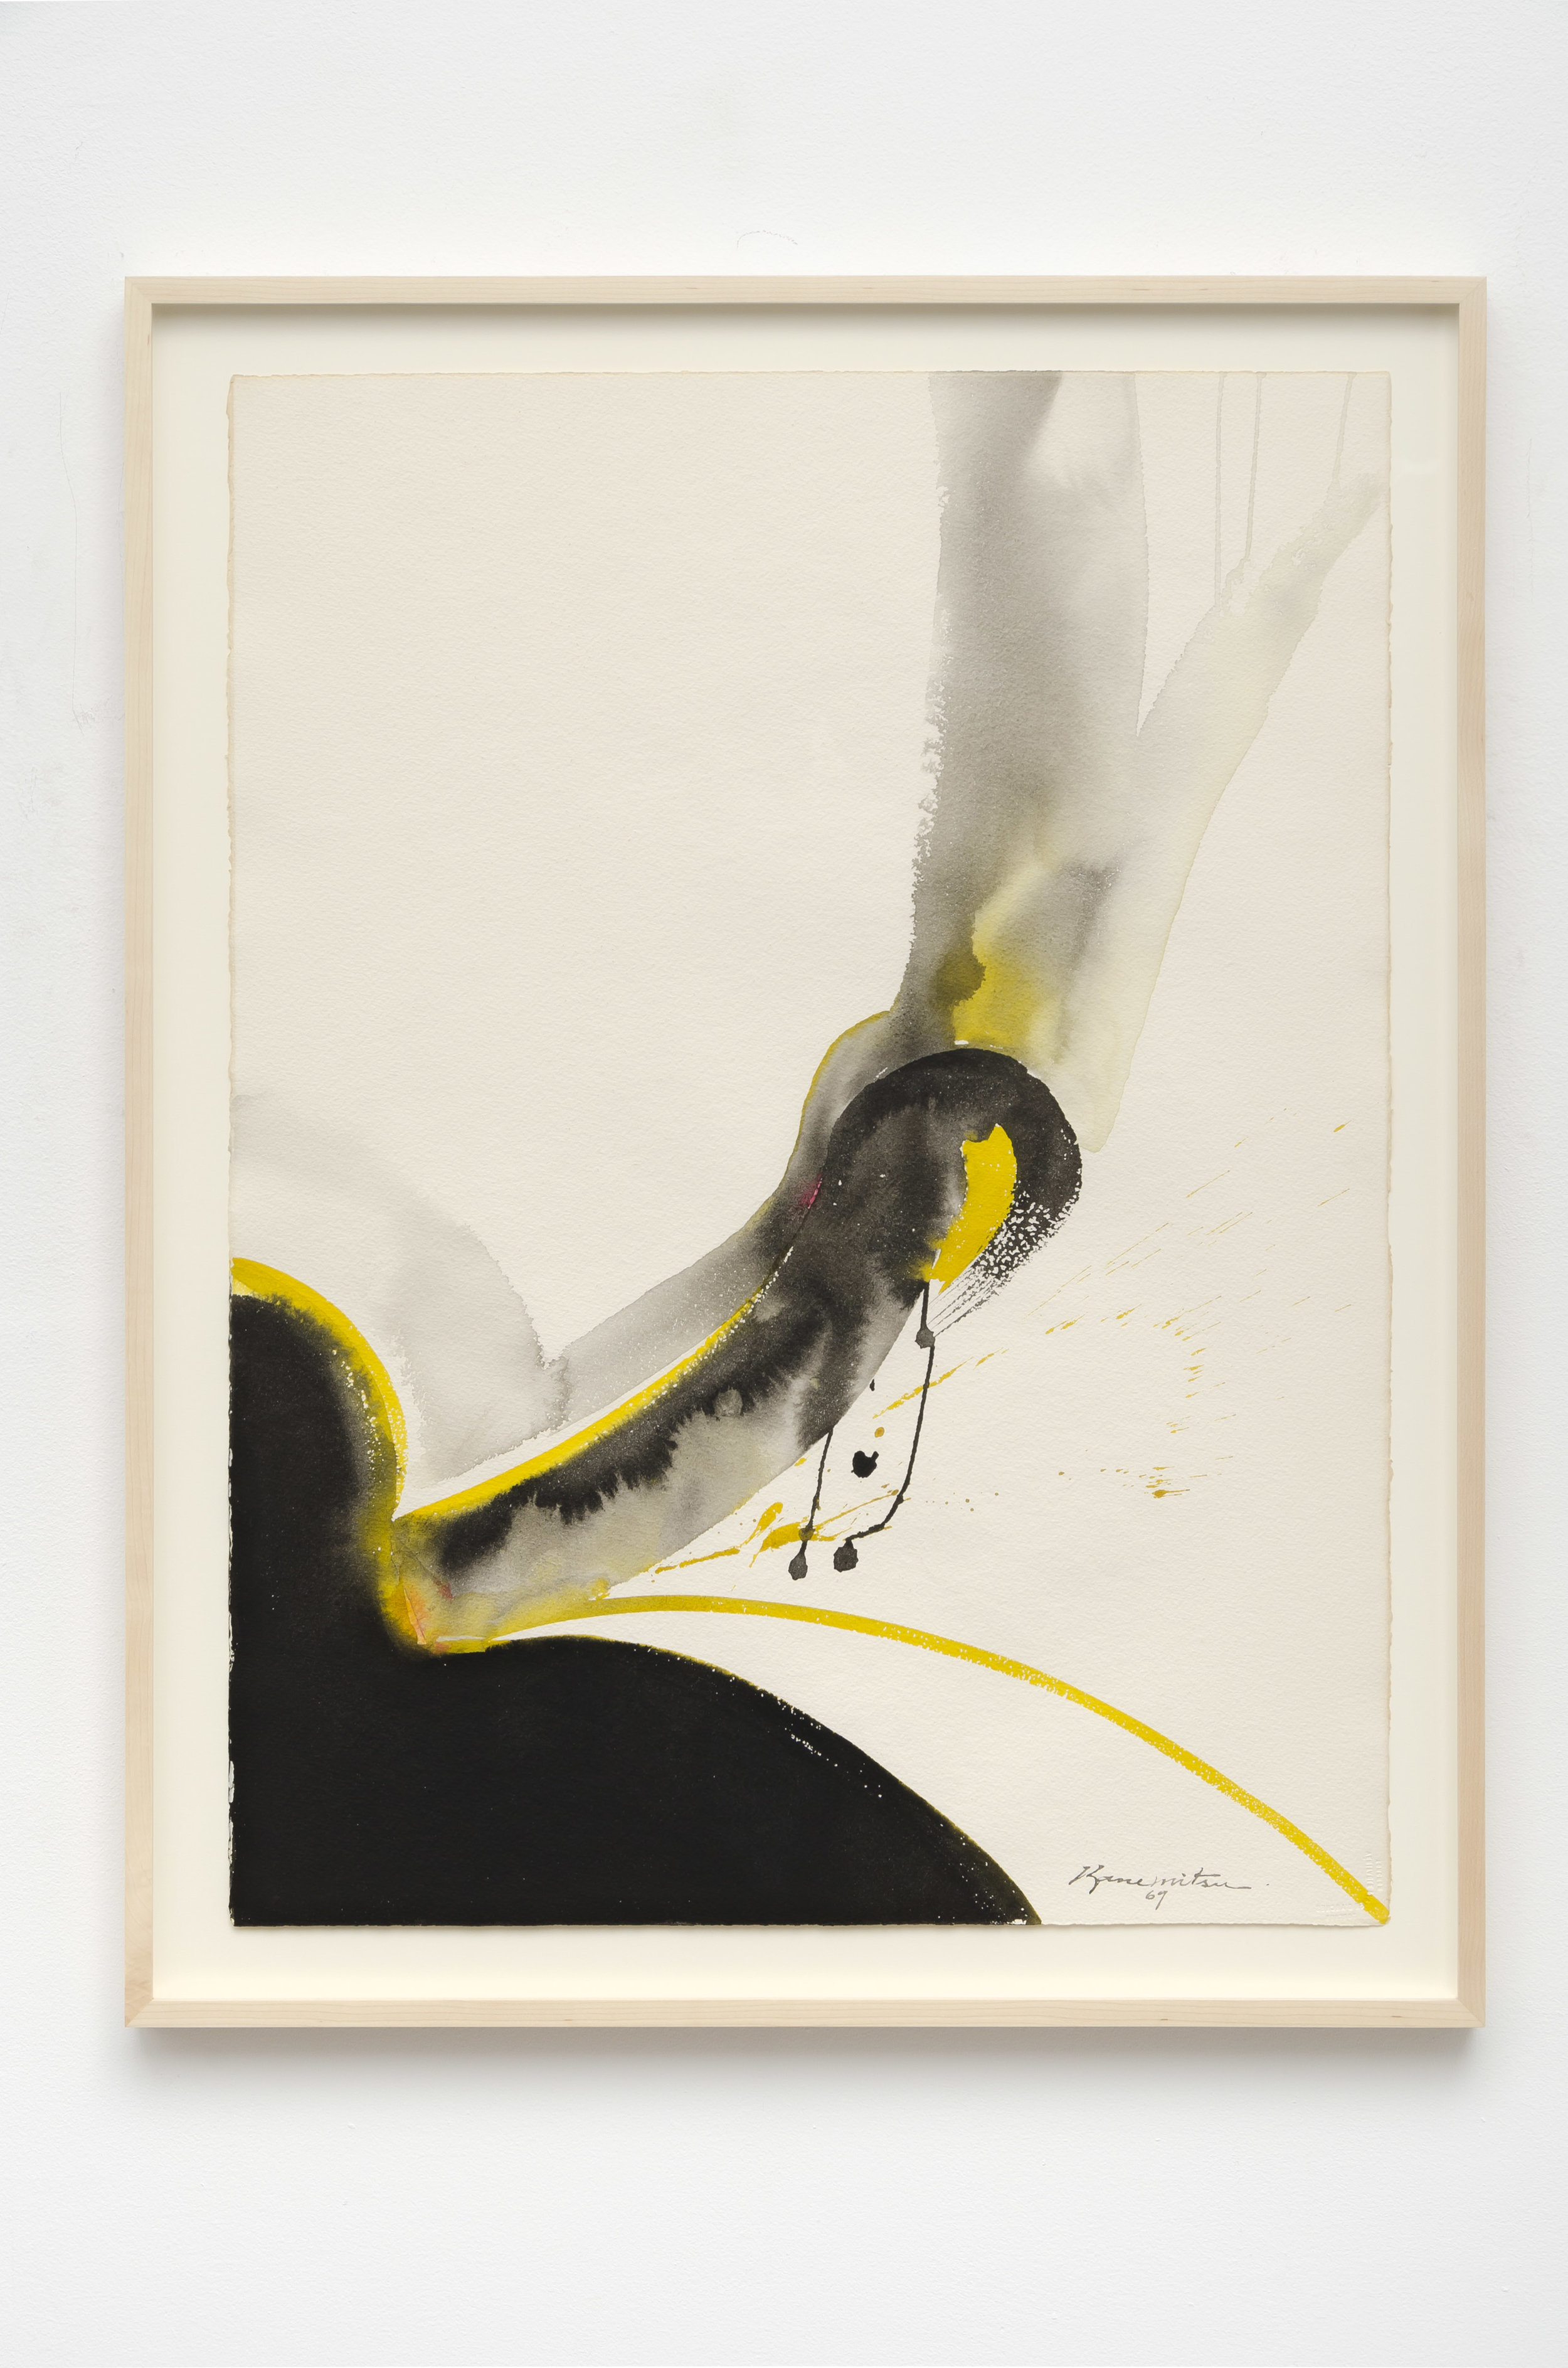 Untitled   1969  sumi and watercolor on paper  33 1/2 x 25 5/8 inches, 85.1 x 65.1 centimeters